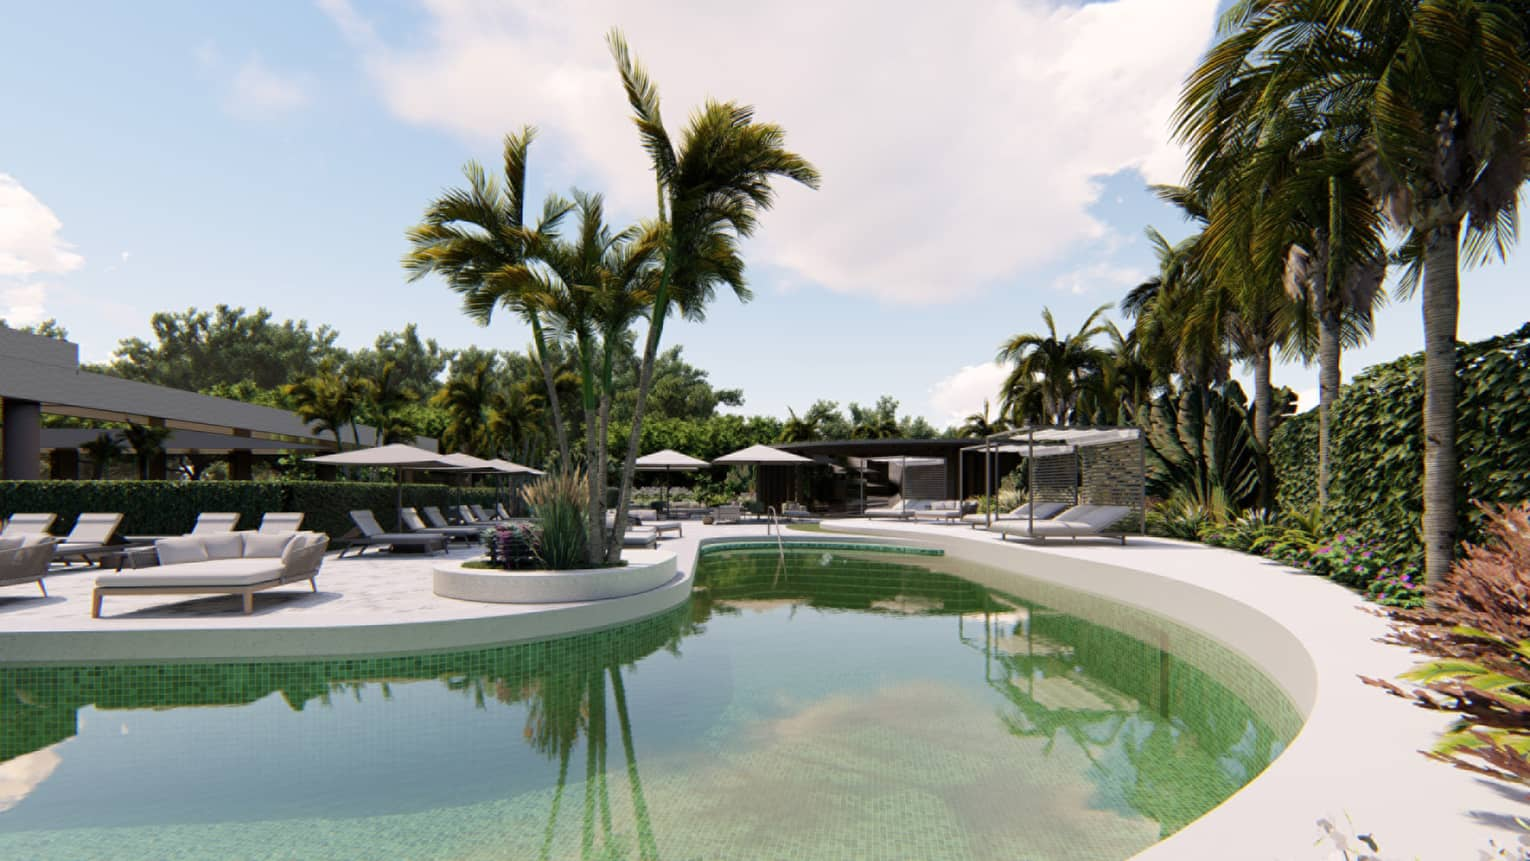 Rendering of outdoor pool surrounded by white lounge chairs and palm trees